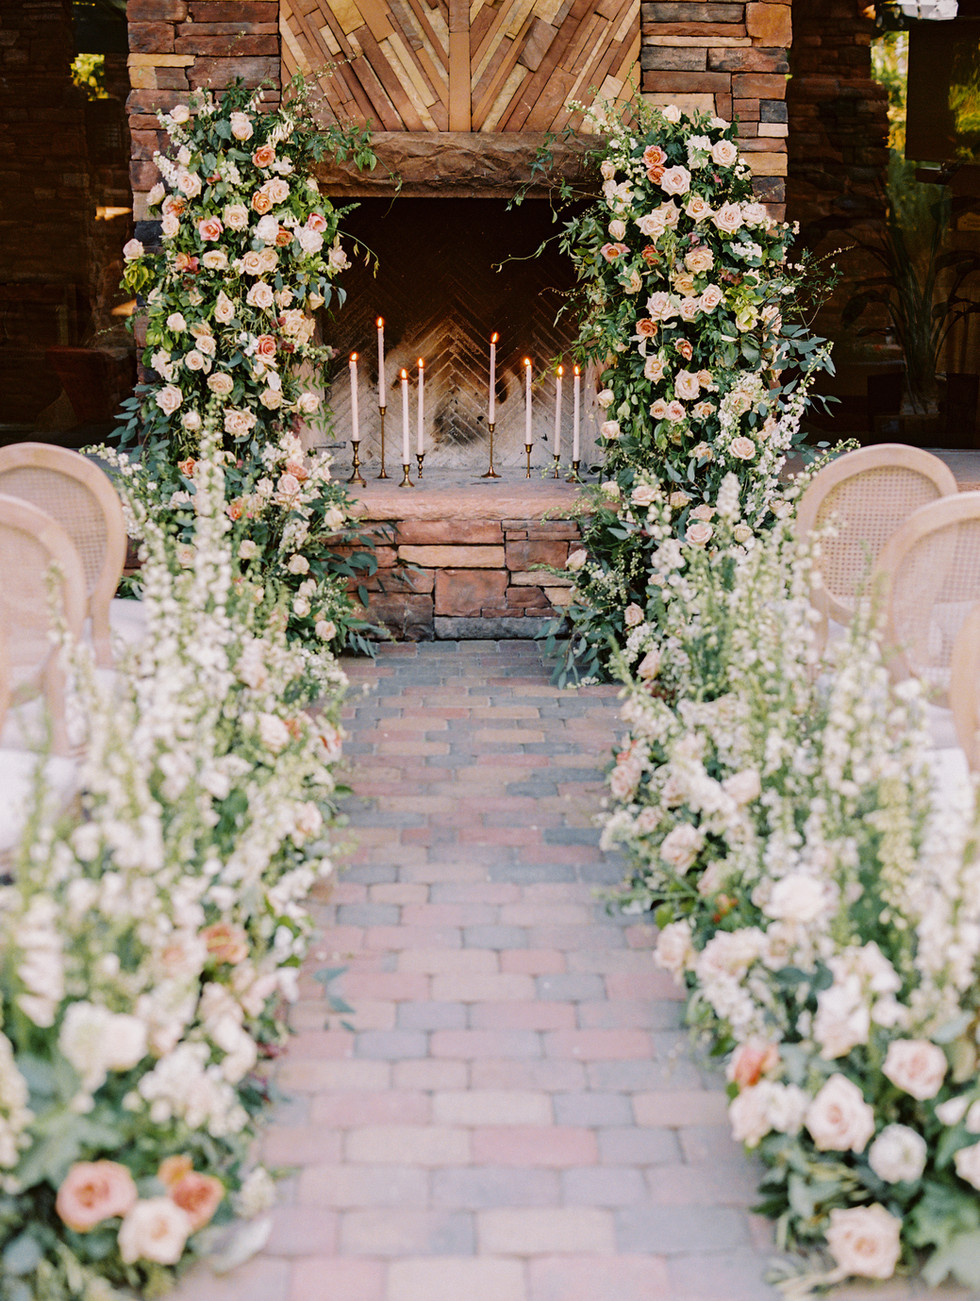 Romantic ceremony florals at Red Rock Country Club, Las Vegas. Photo: Gaby Jeter